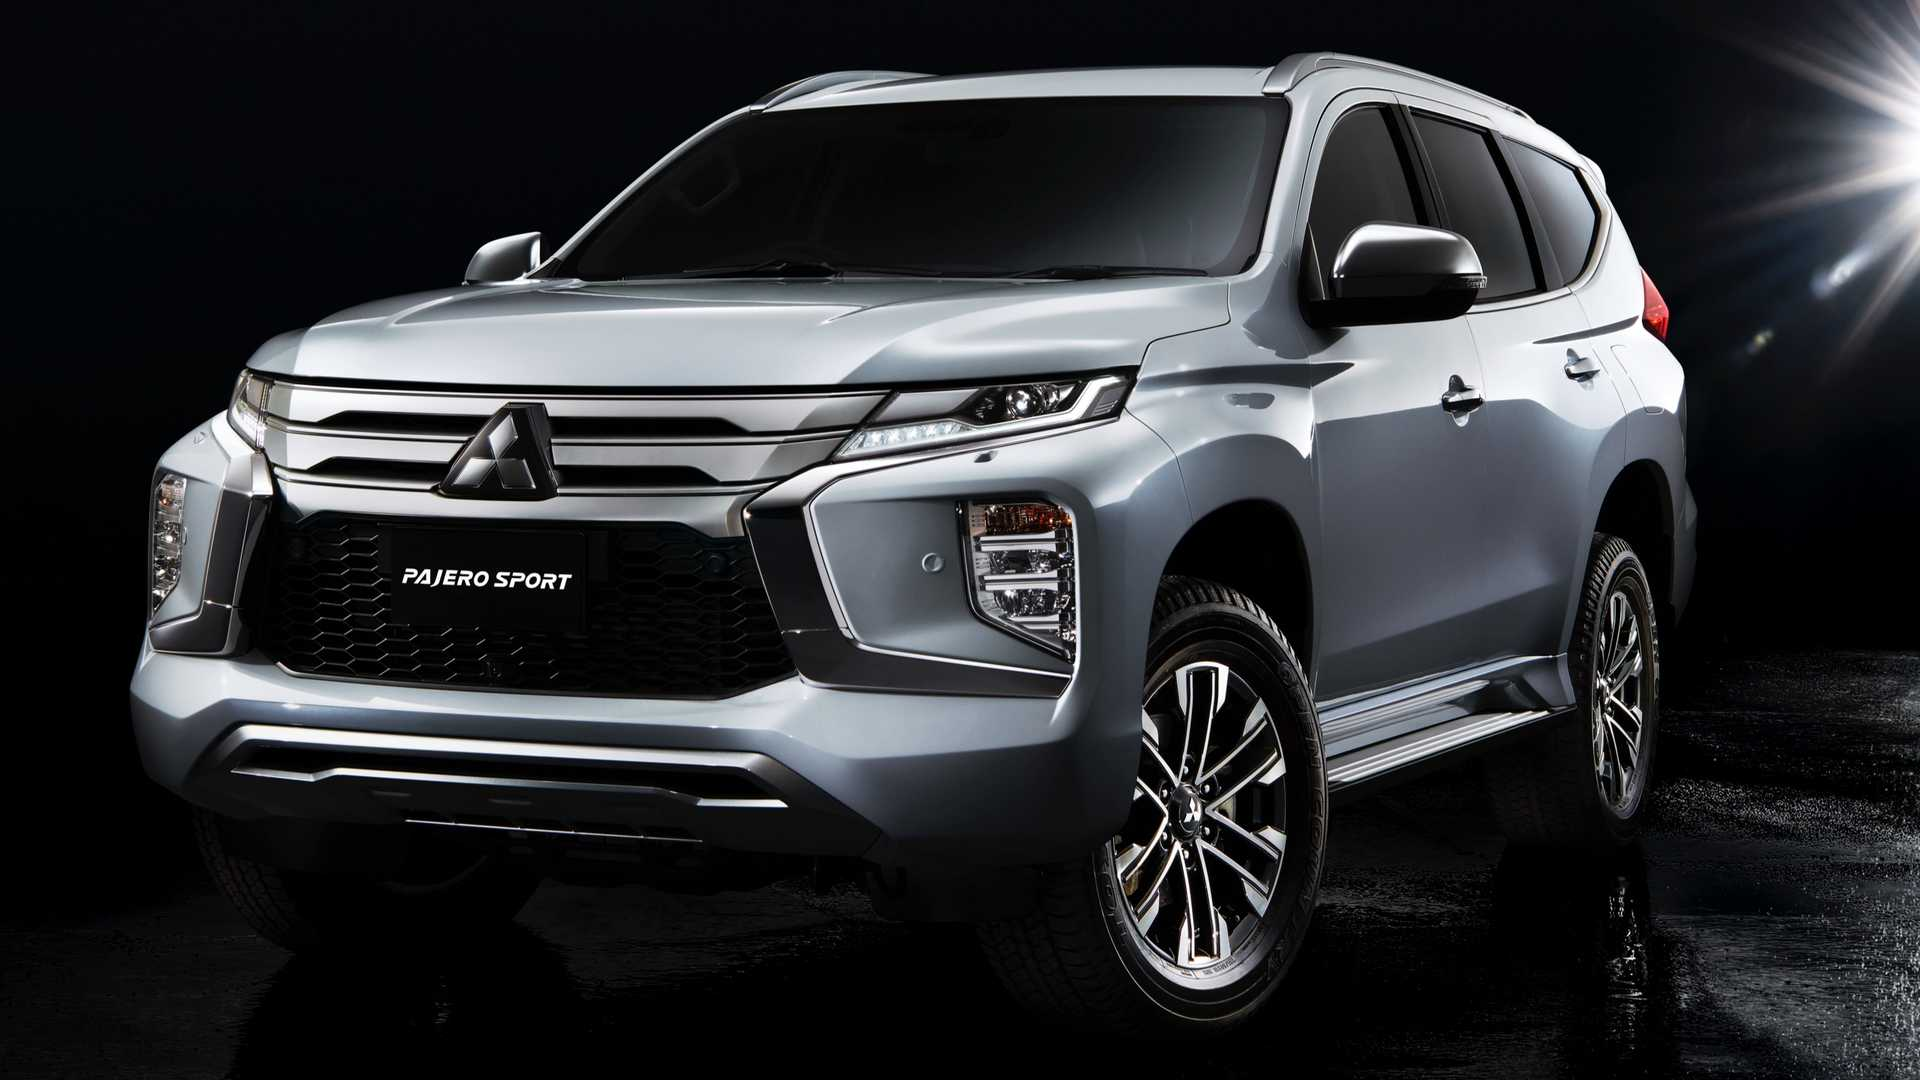 97 The Best Mitsubishi Pajero Full 2020 Price And Review